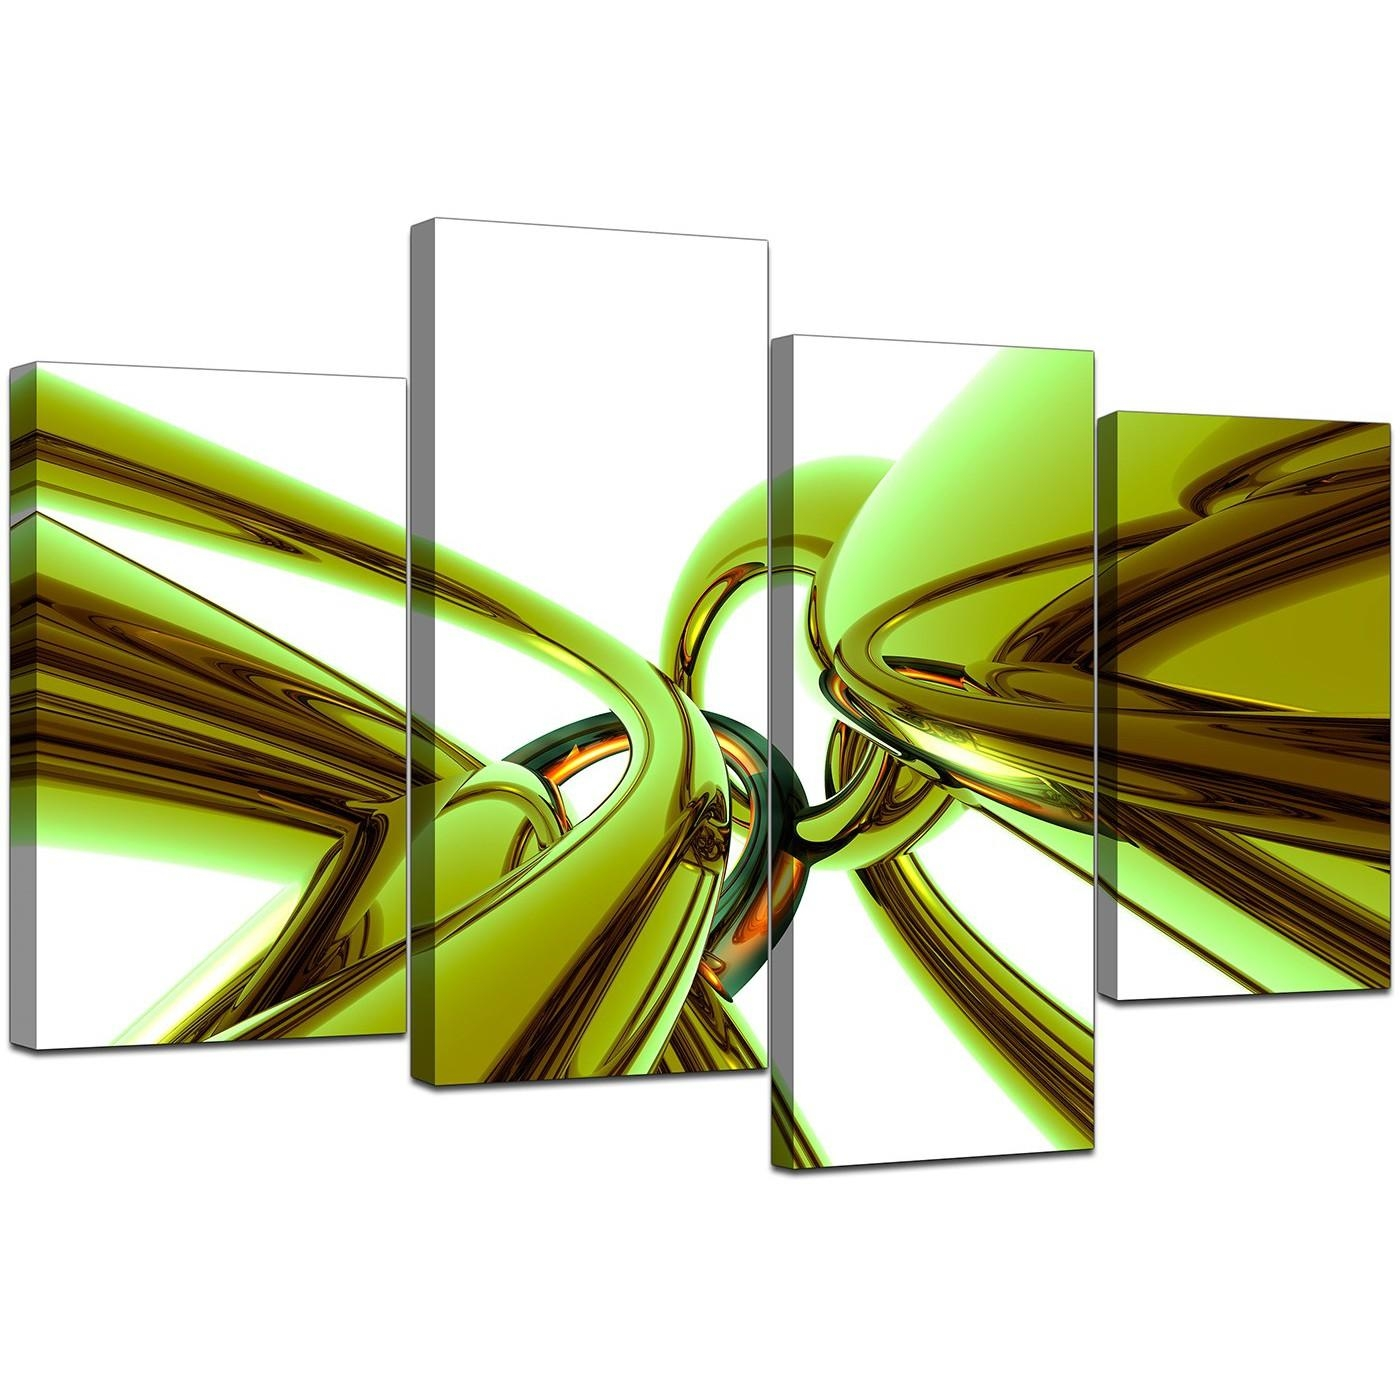 Abstract Canvas Wall Art In Green For Your Living Room – Set Of 4 Regarding Green Canvas Wall Art (Image 4 of 20)